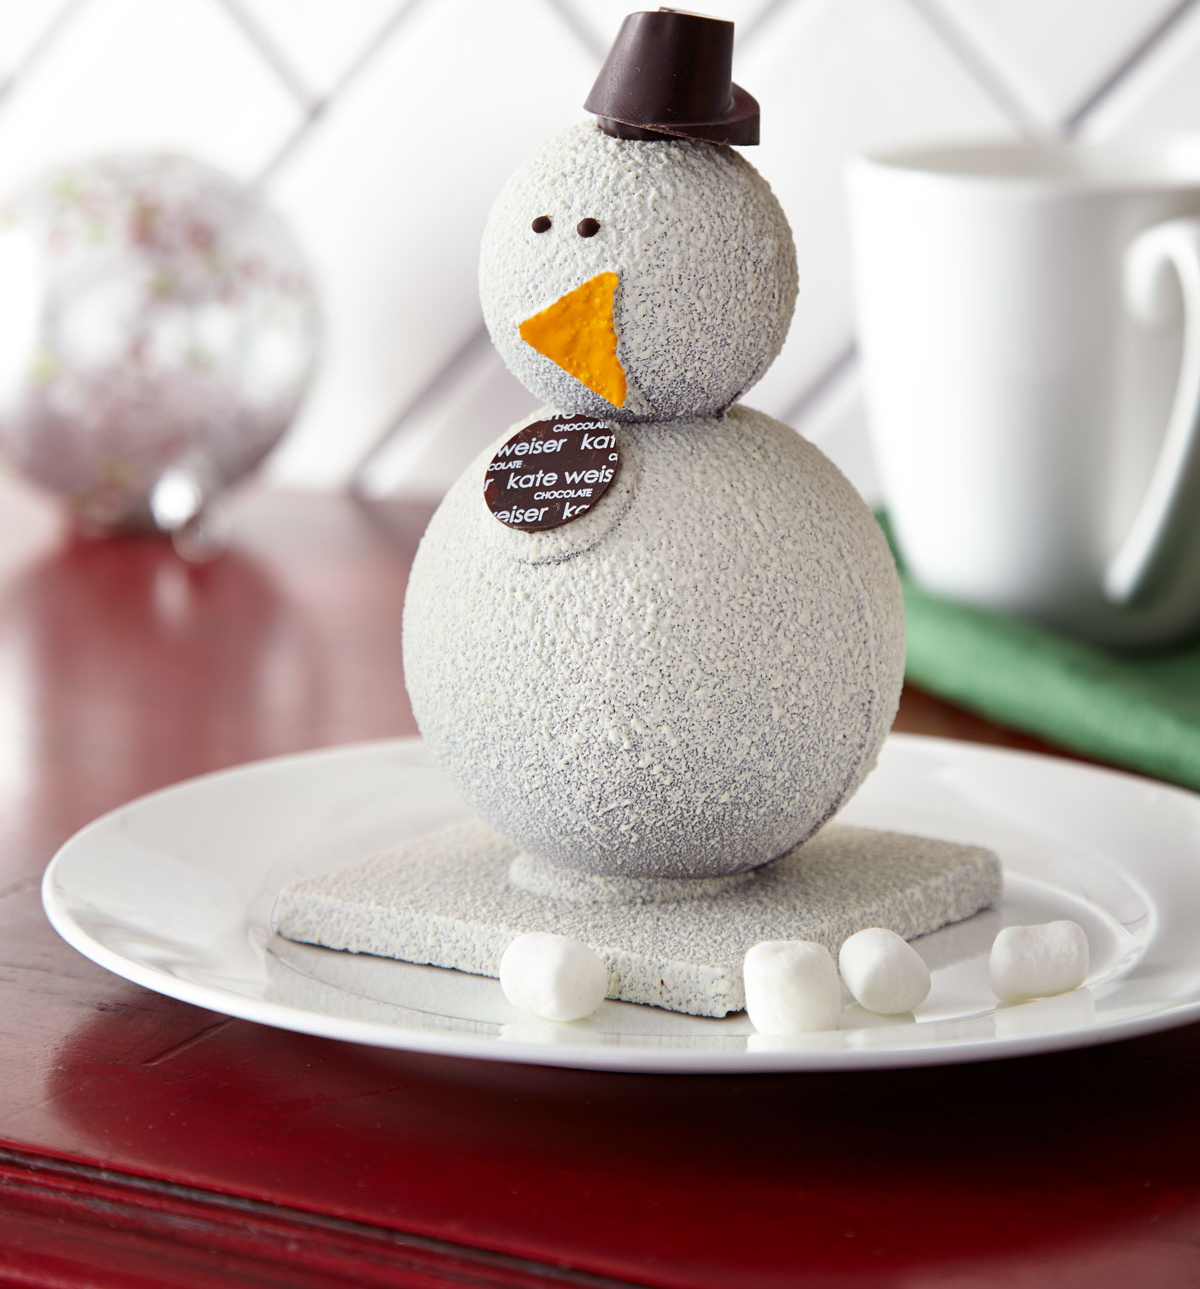 Carl the snowman turns into hot chocolate